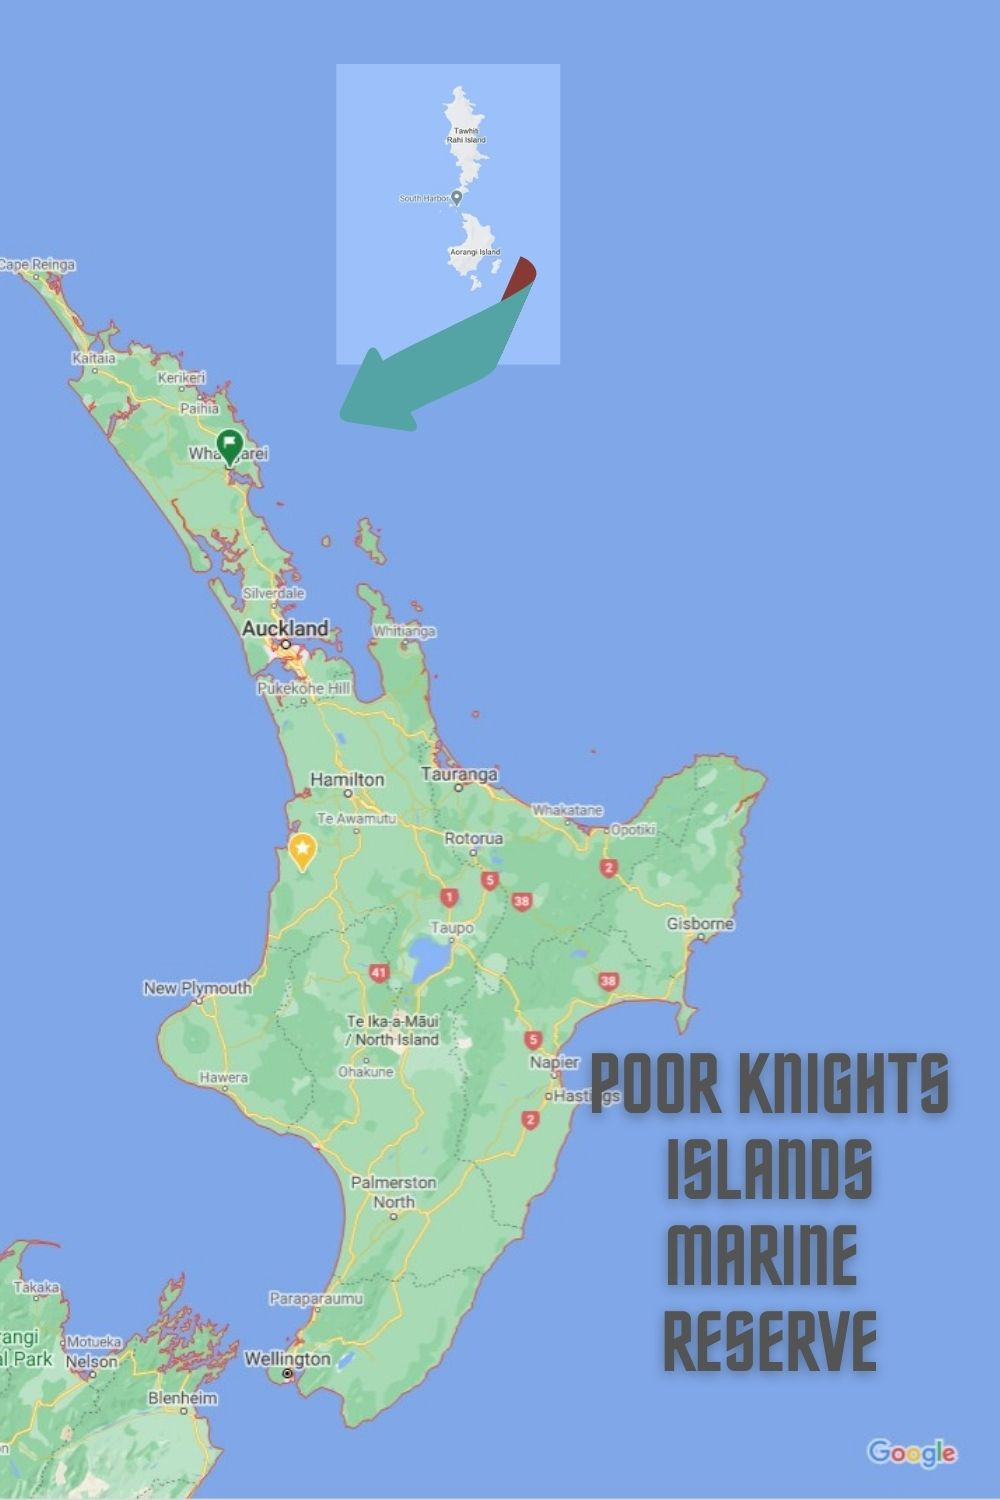 Map of North Island New Zealand showing map location of the Poor Knights Islands